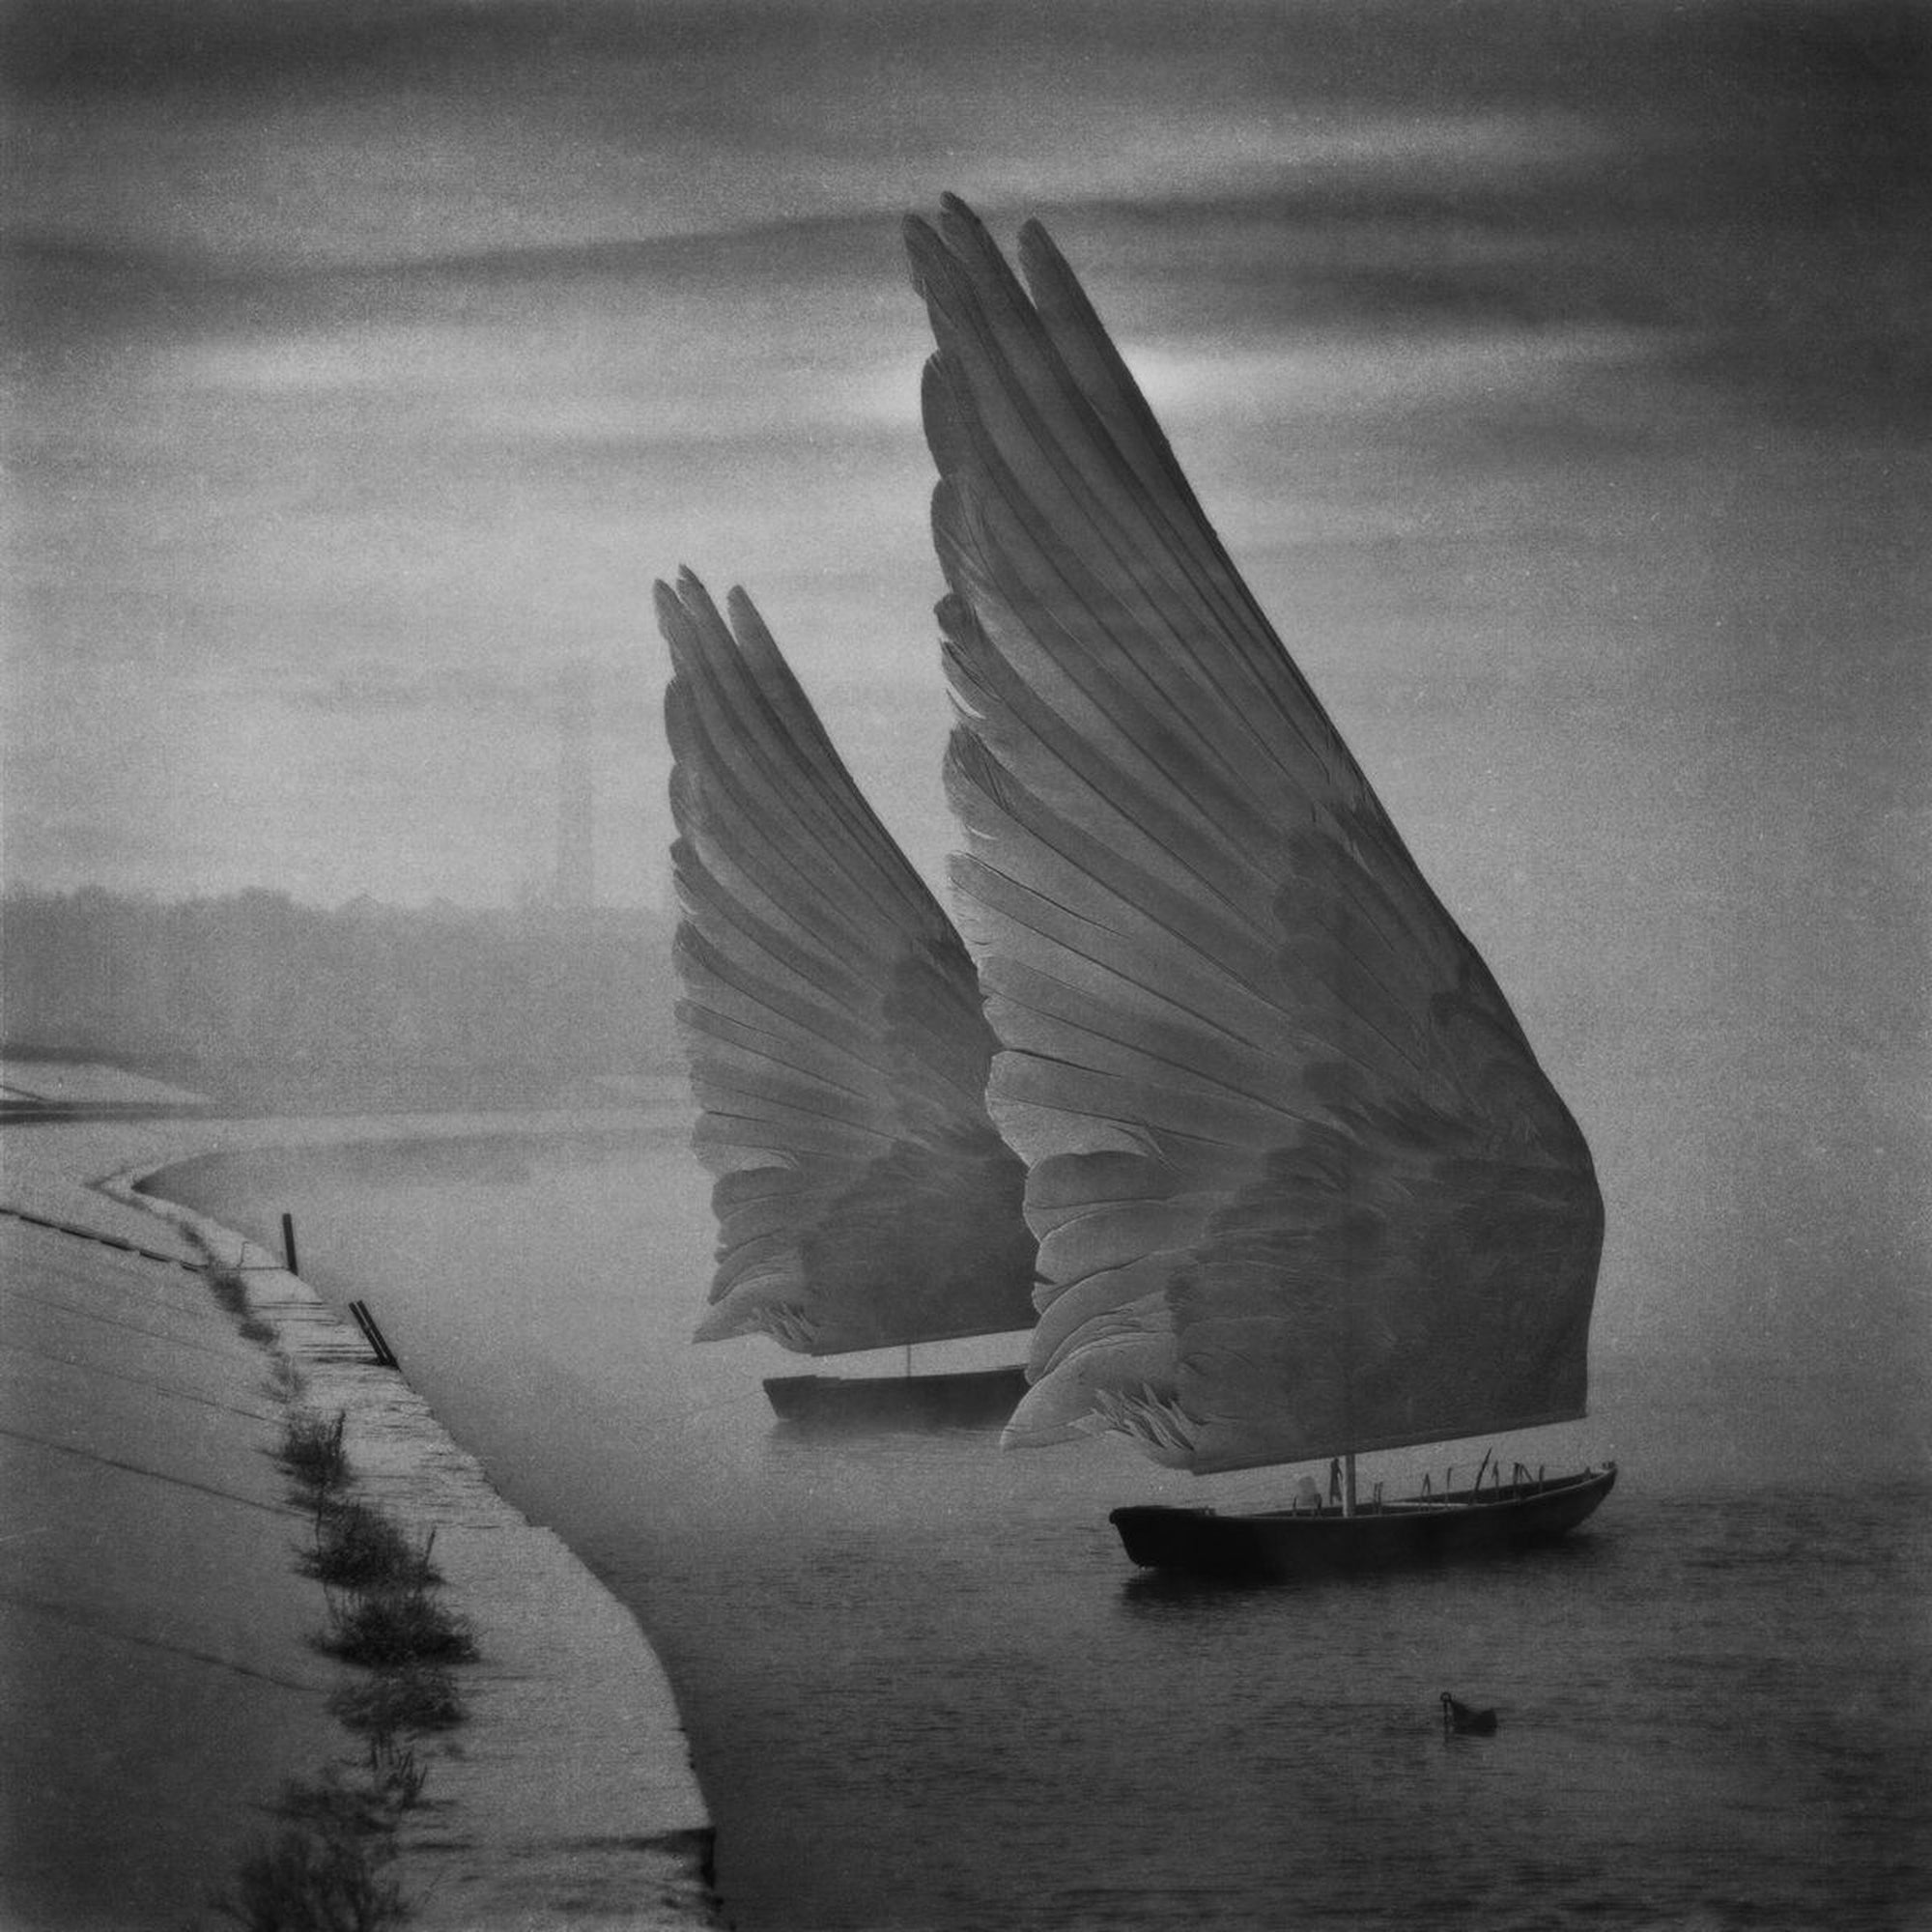 Wings of Imagination by Dariusz Klimczak